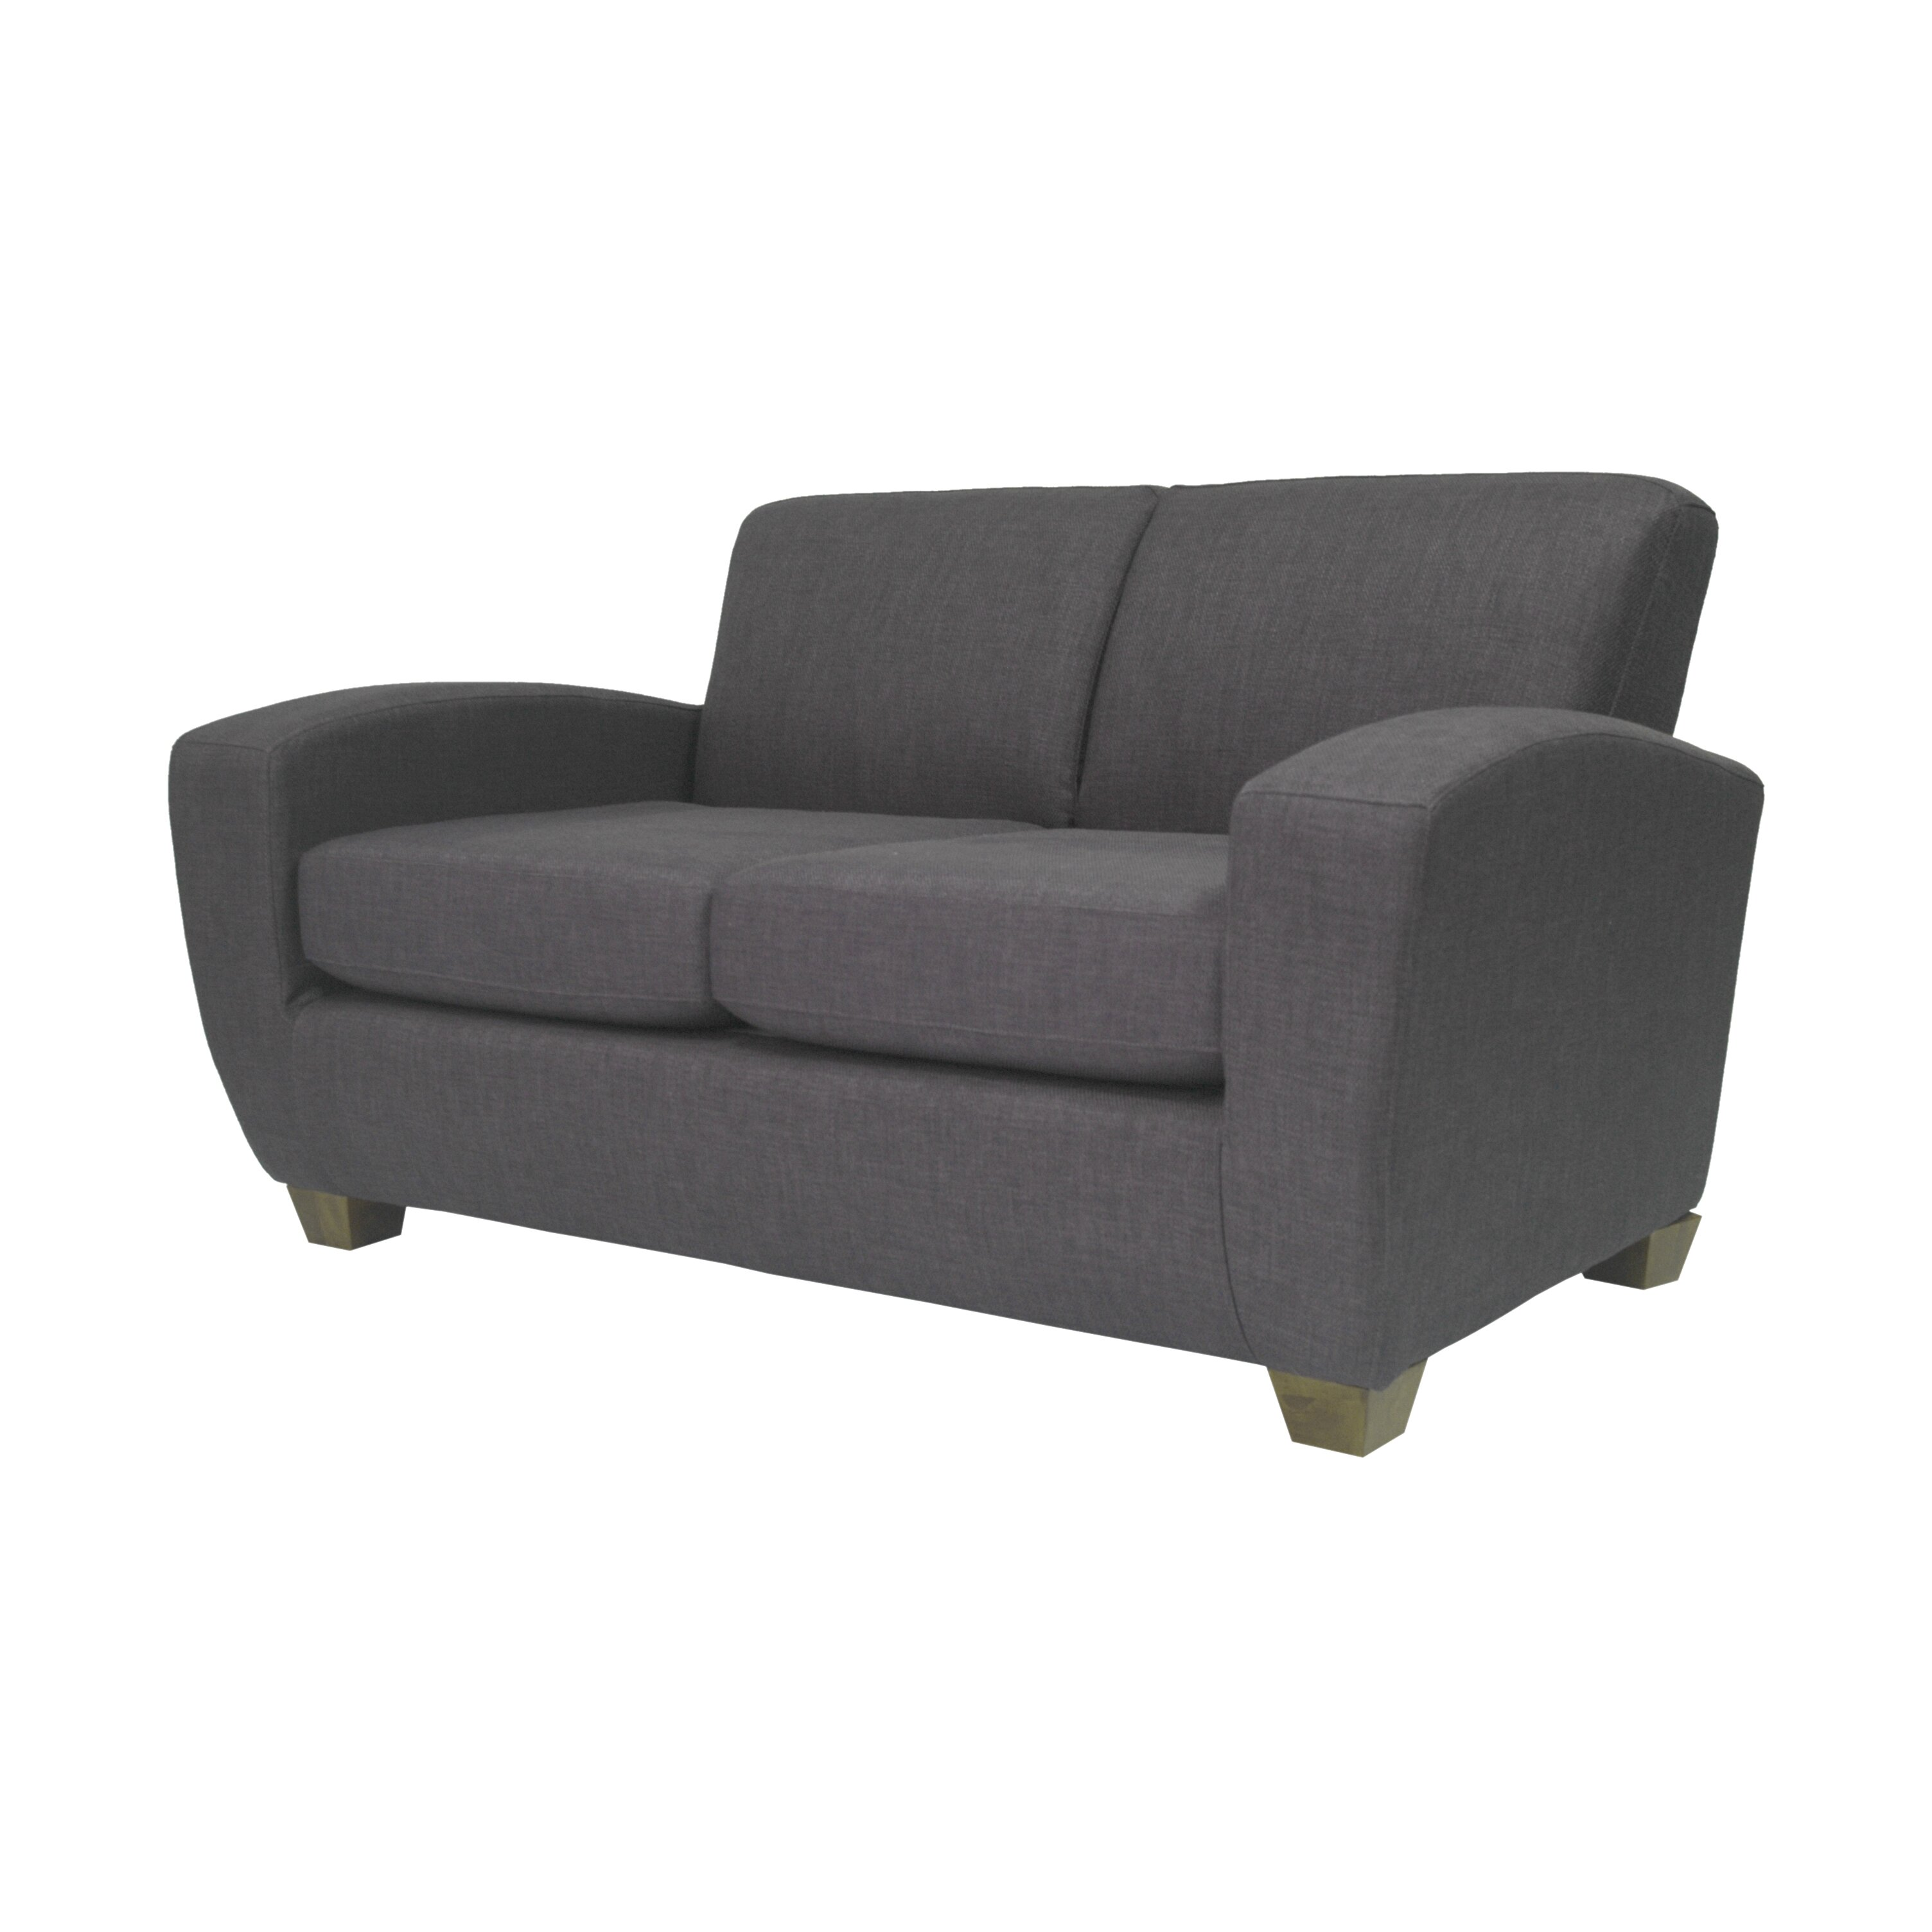 Fox Hill Trading Scandic Ultra Lightweight Loveseat Wayfair